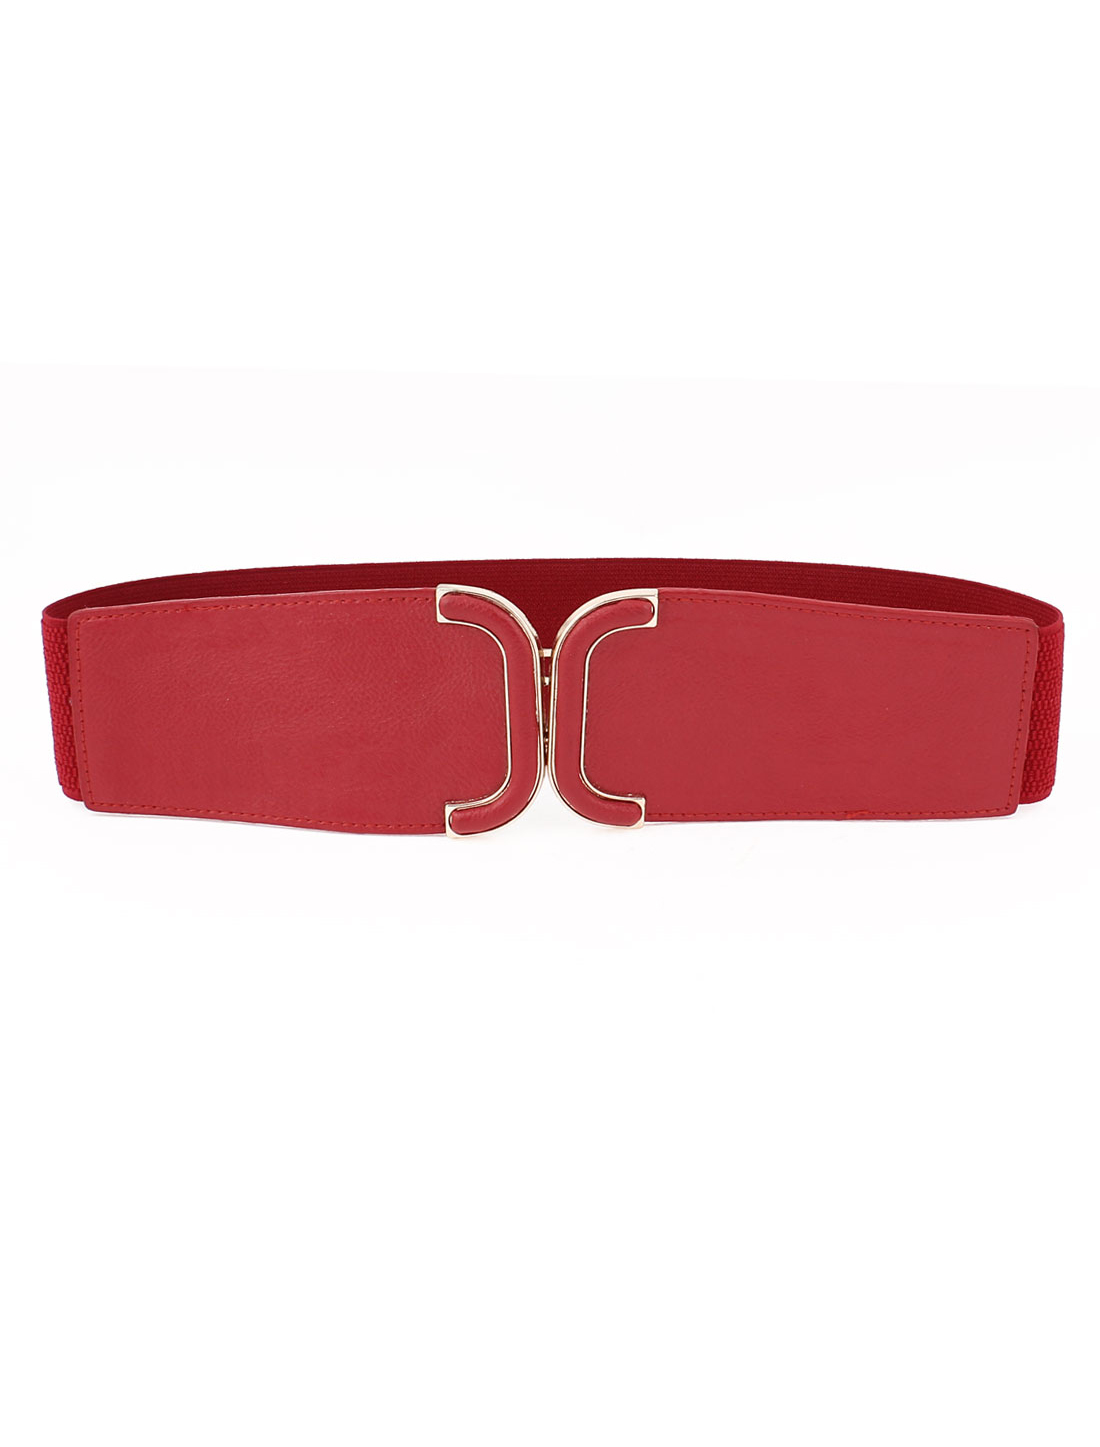 Women Metal Interlock Buckle Elastic Faux Leather Cinch Belt Band Red